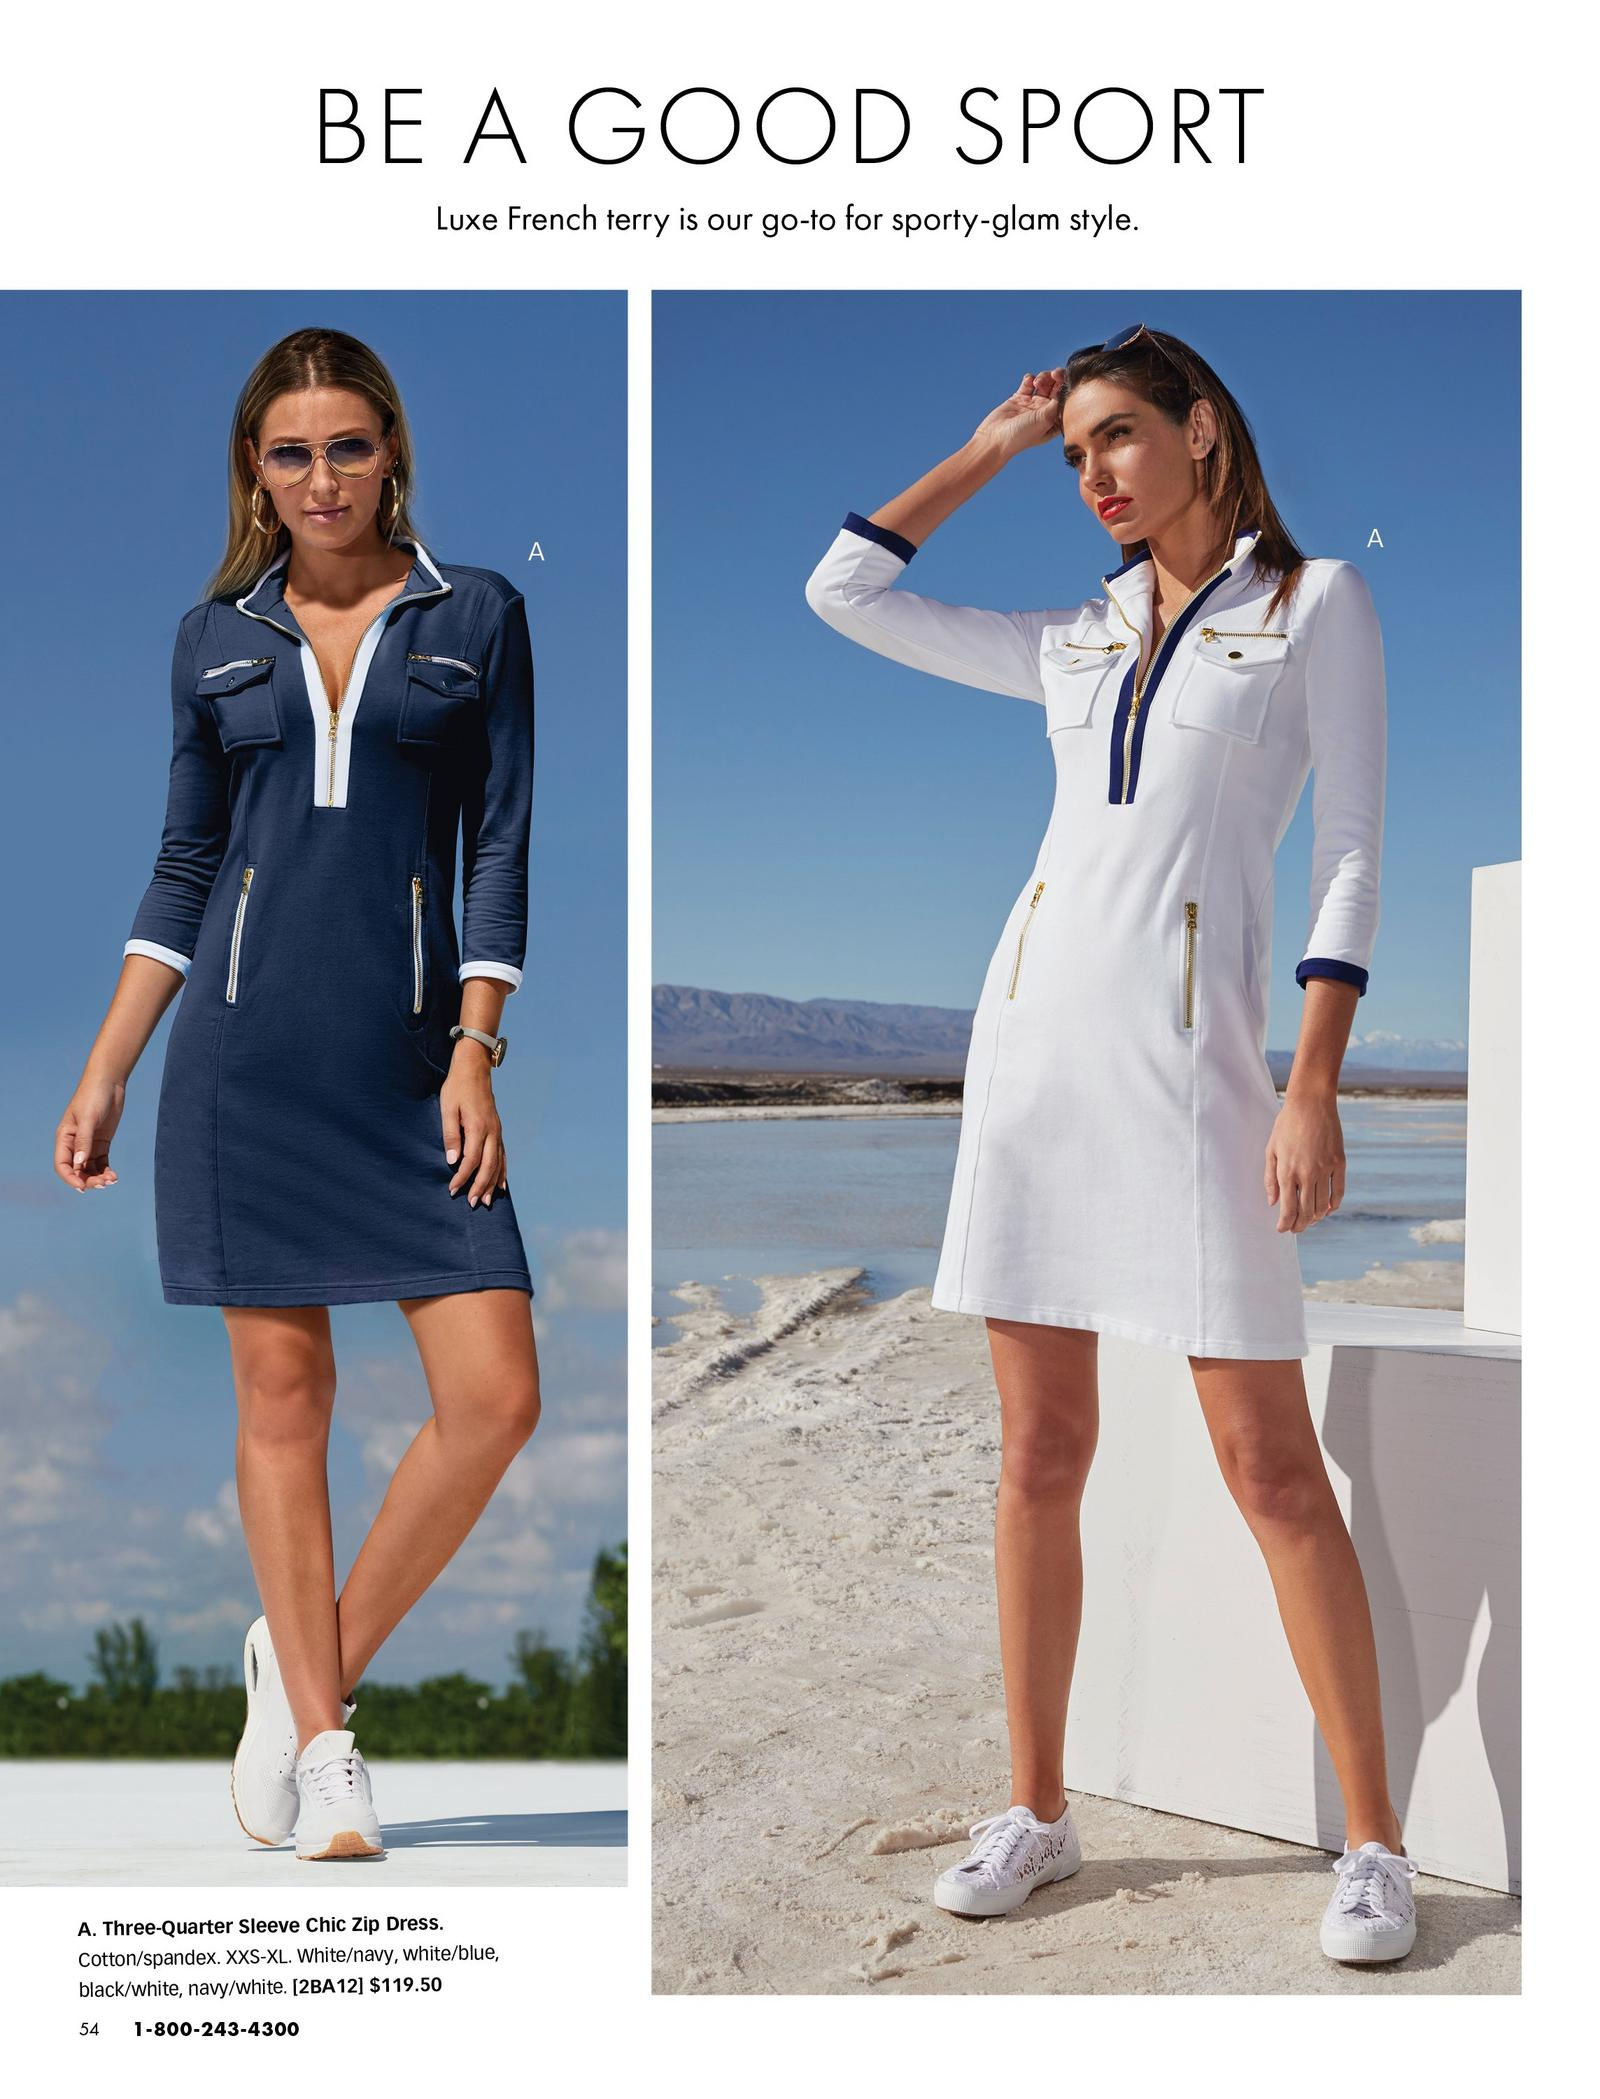 left model wearing a navy long-sleeve sport dress and white sneakers. right model wearing a white long-sleeve sport dress with white sneakers.